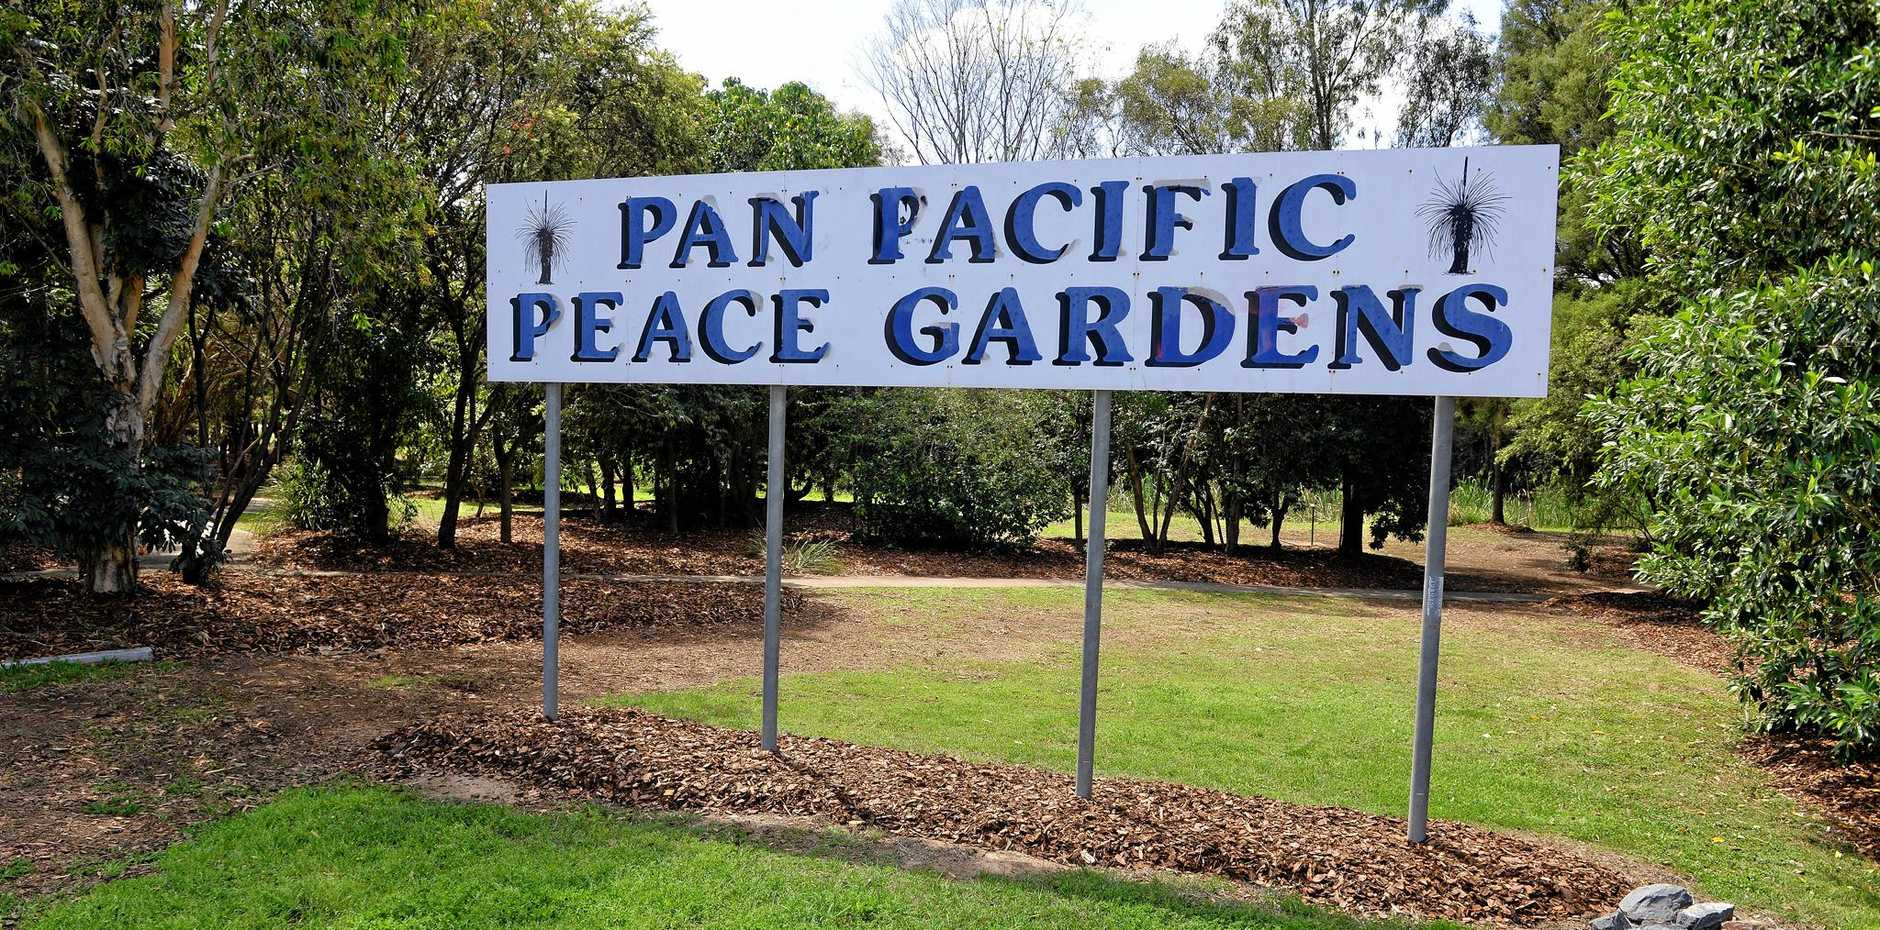 HANKY PANKY HOTSPOT: Redbank's Pan Pacific Peace Gardens are a magnet for gay men hooking up.